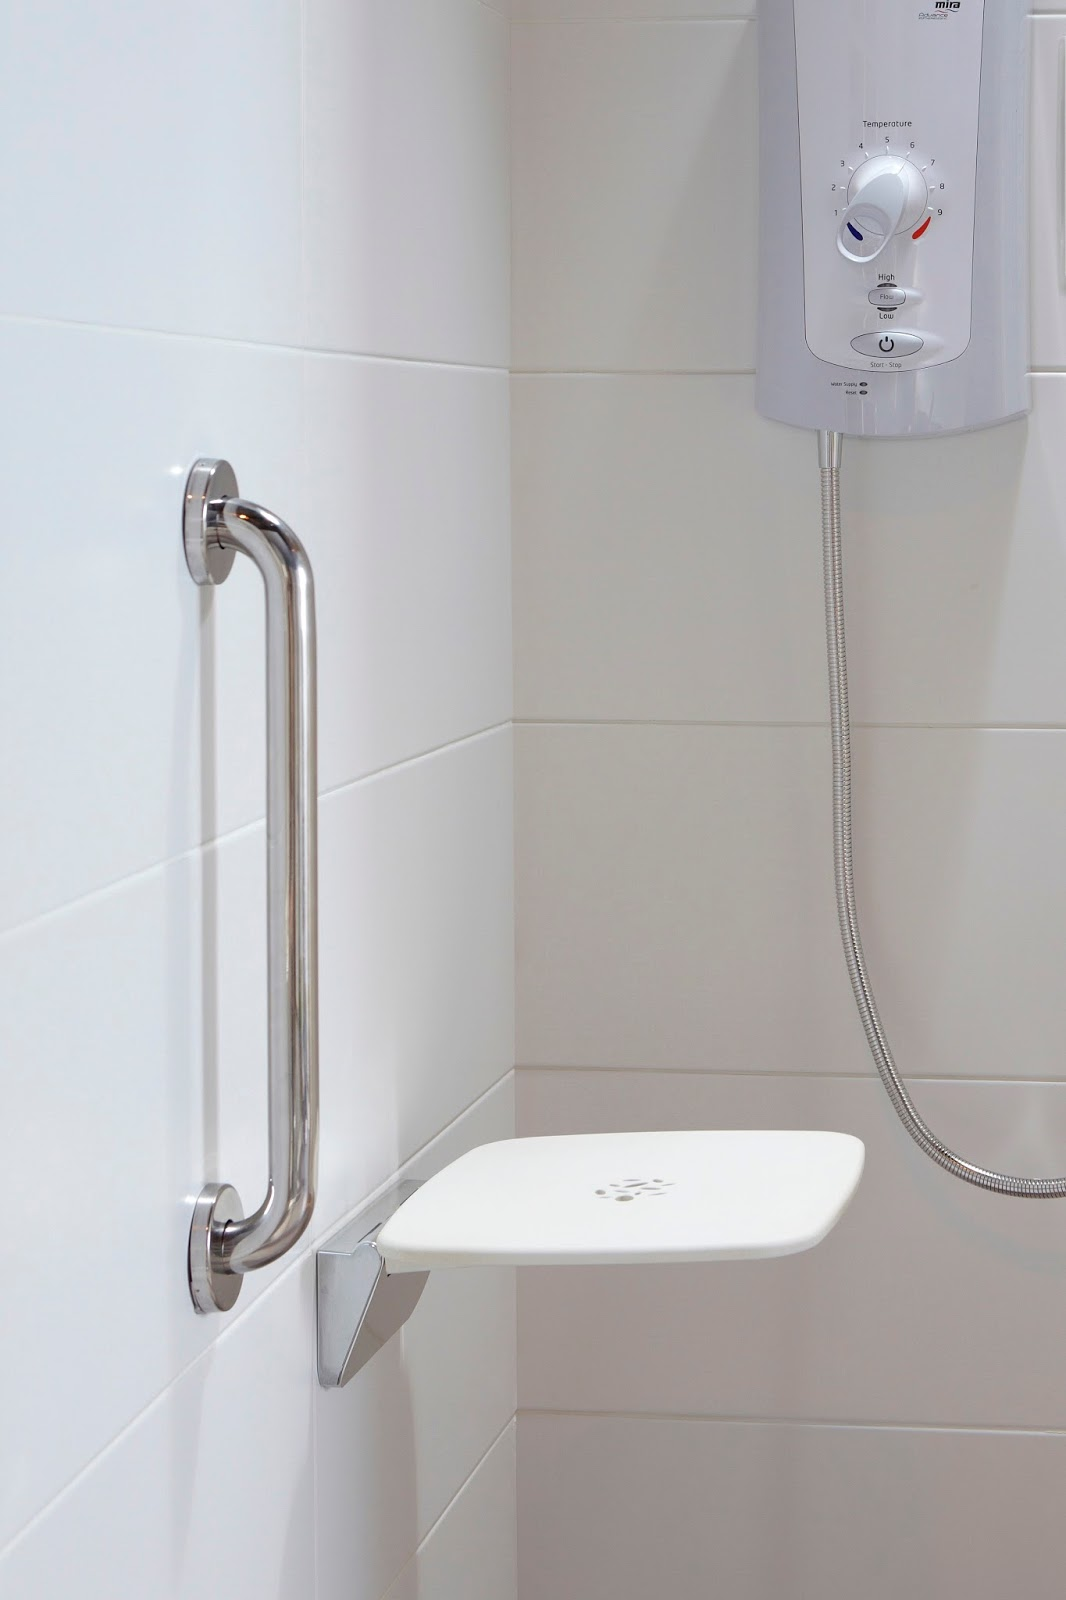 Mira showers press office for Grab bars in bathroom